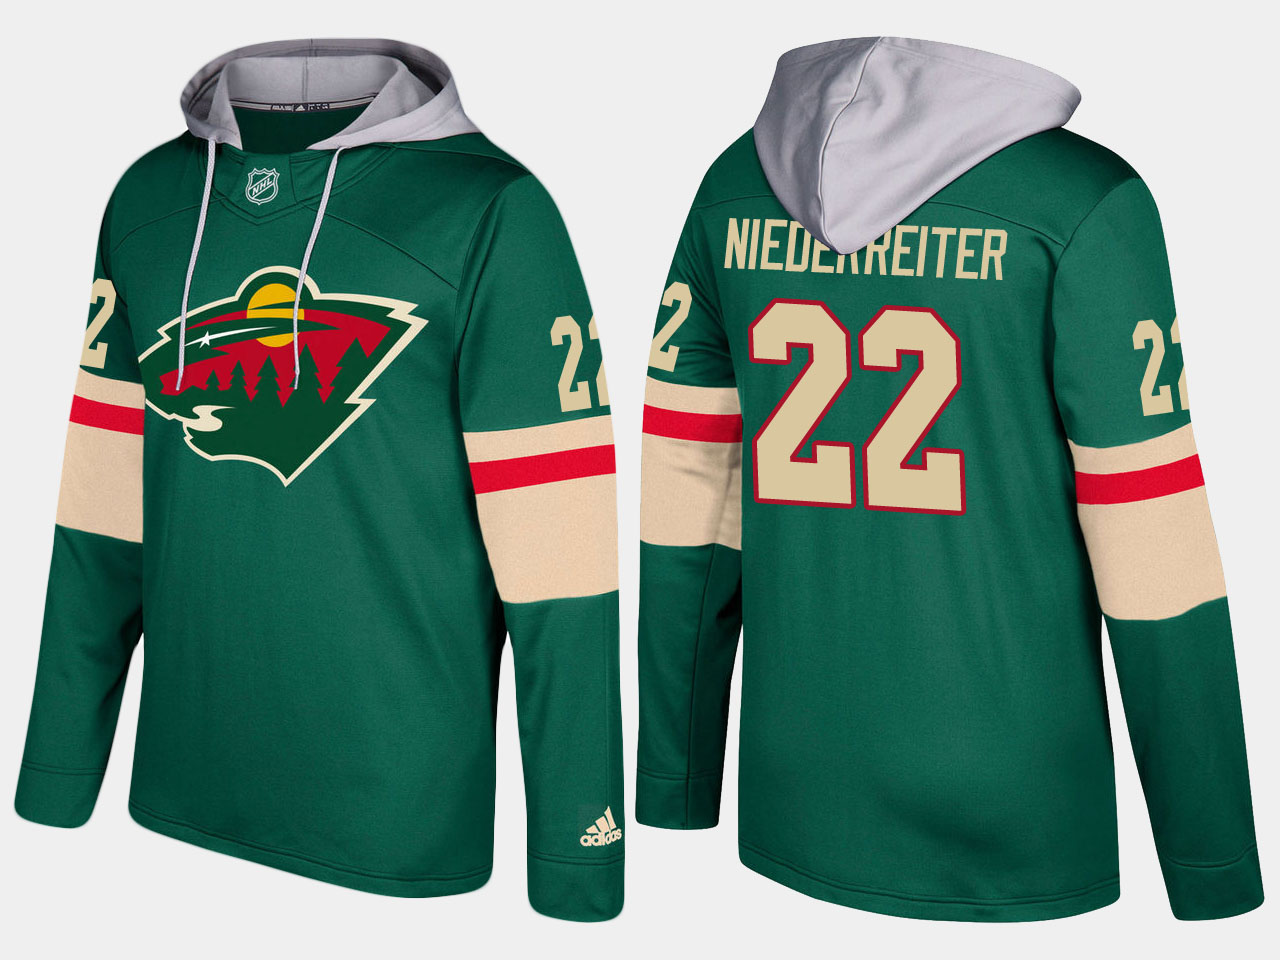 Nike Wild 22 Nino Niederreiter Name And Number Green Hoodie